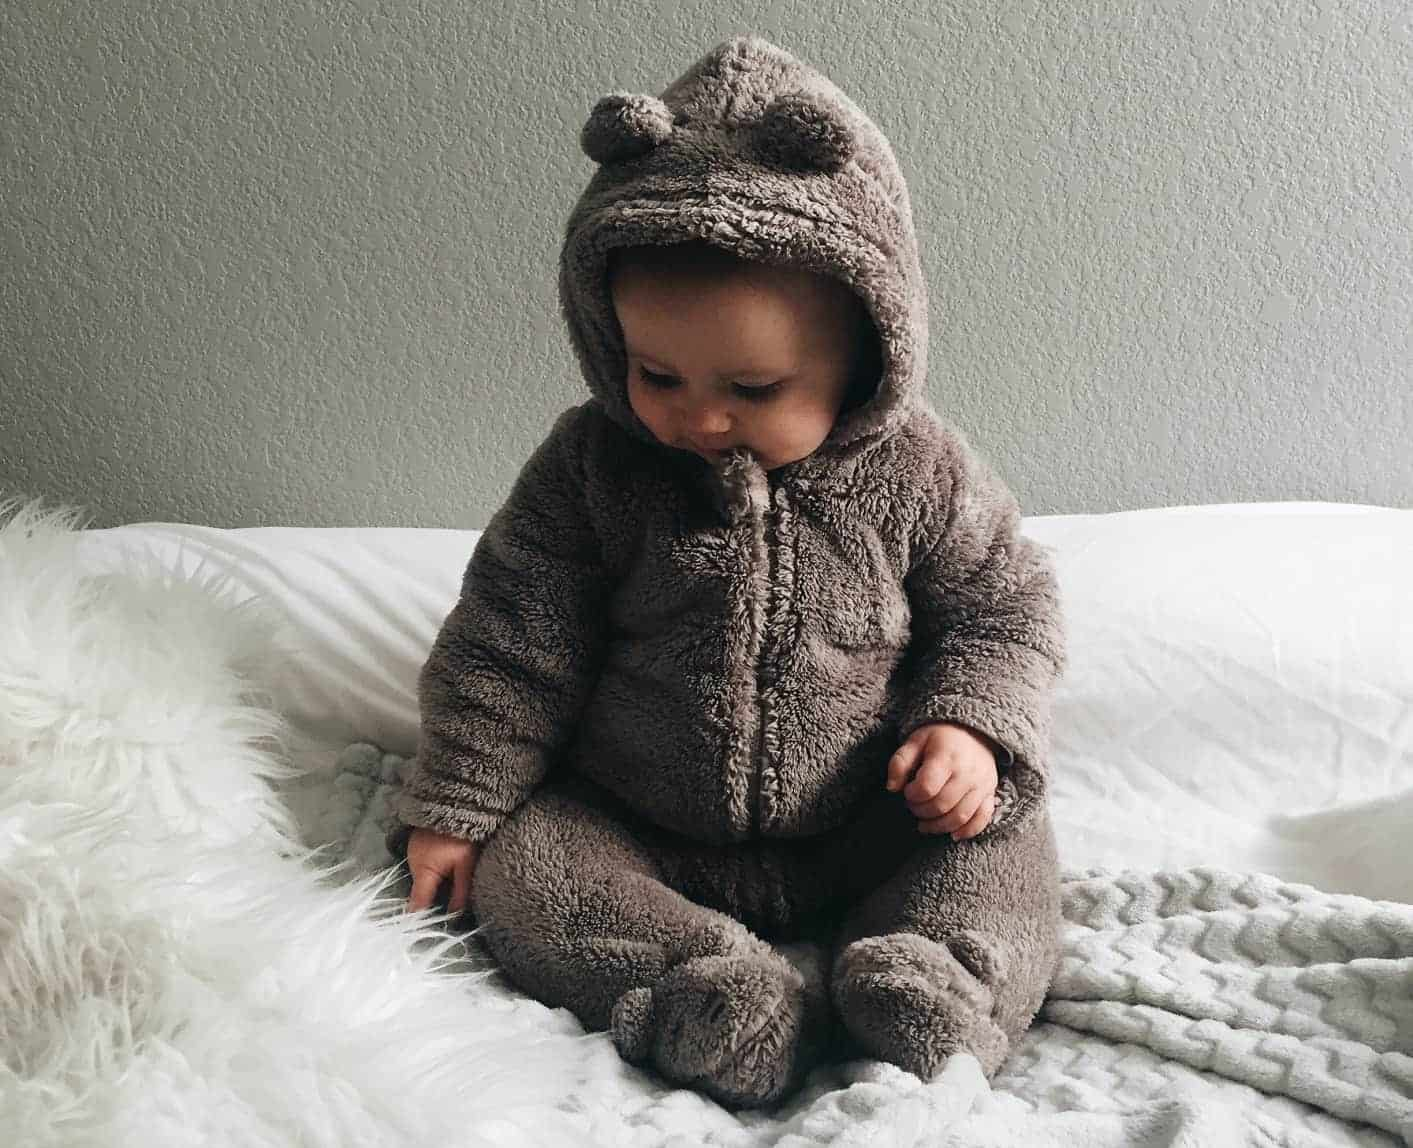 Baby in furry onesie sat on a cosy blanket